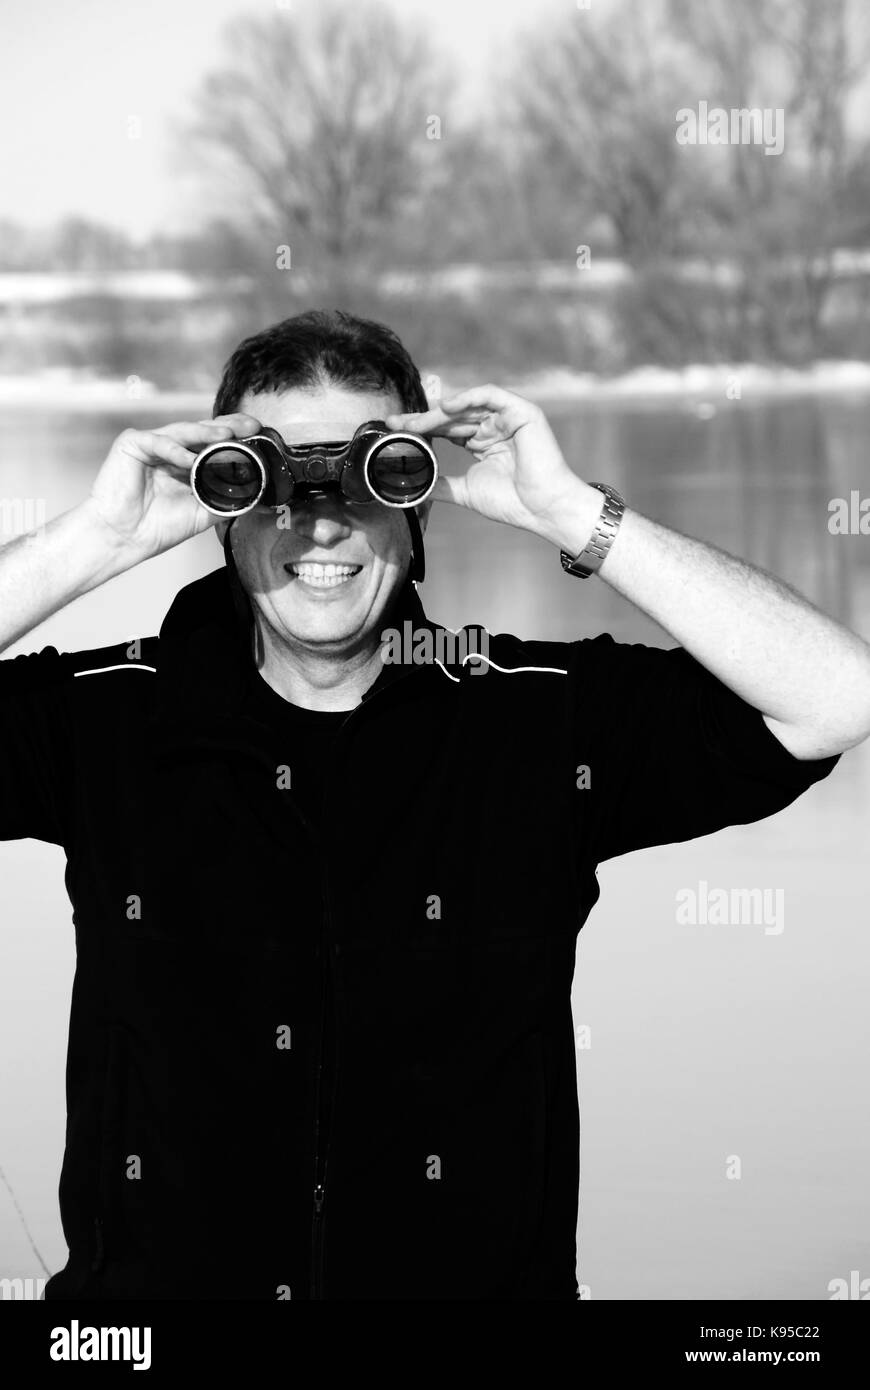 Man looking in the distance with binoculars - Stock Image